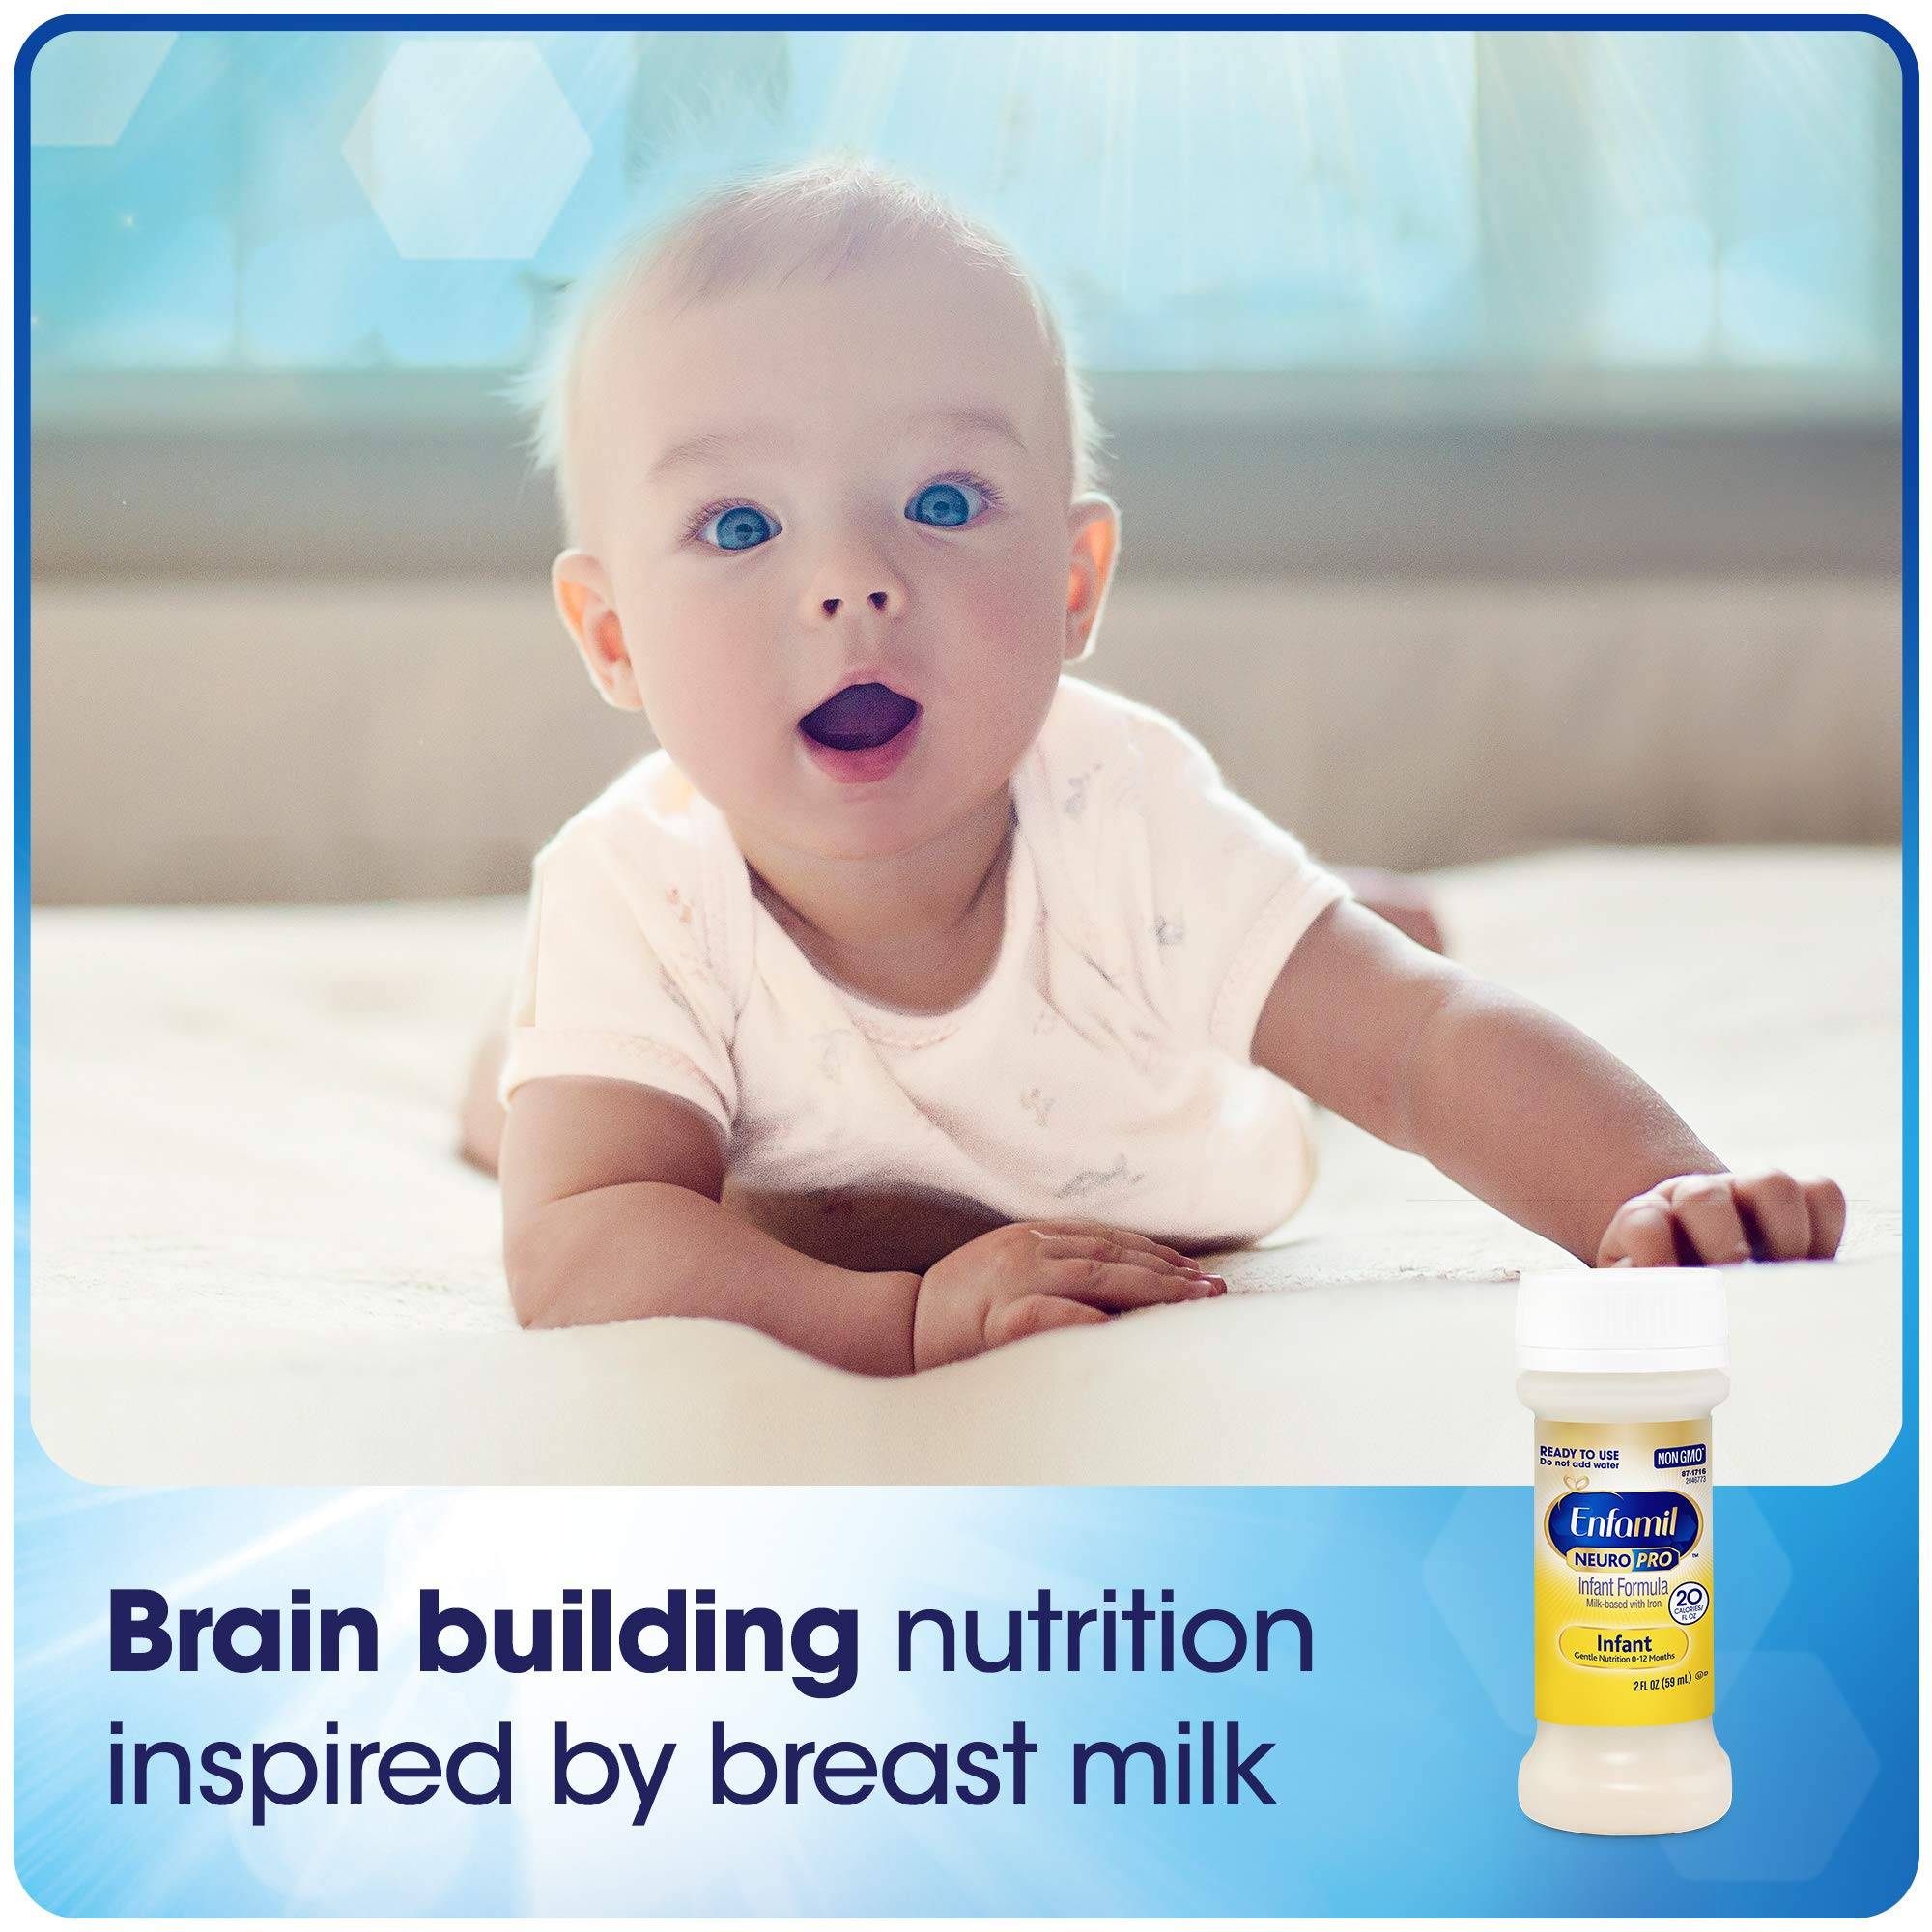 Enfamil NeuroPro Infant Formula - Brain Building Nutrition Inspired by Breast Milk - Ready to Use Liquid, 8 fl oz (24 count) Packaging May Vary by Enfamil (Image #7)